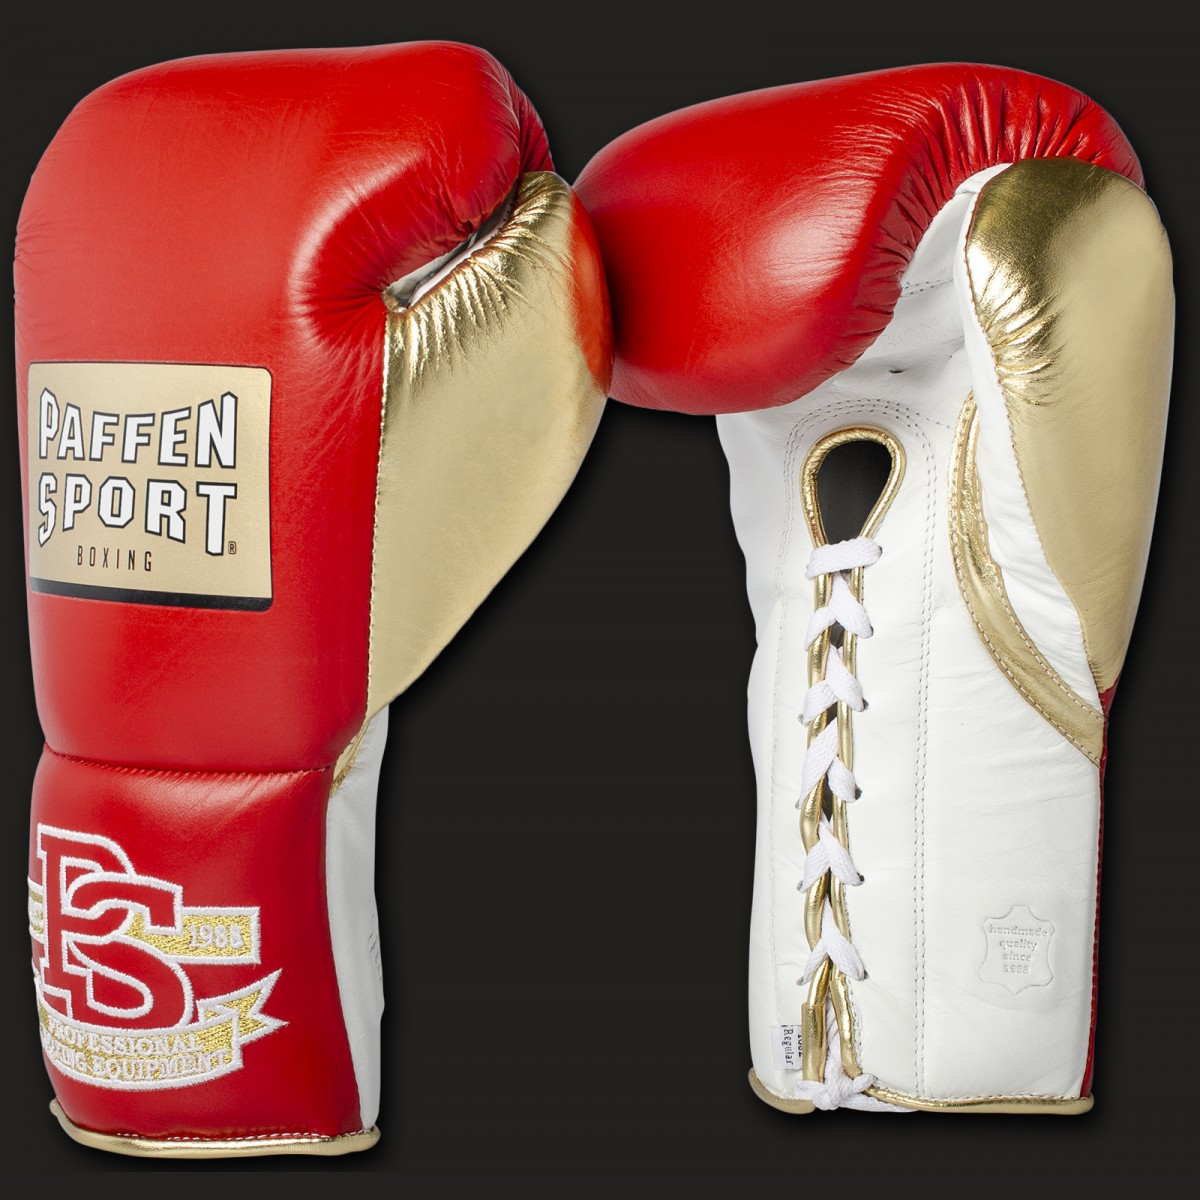 PRO MEXICAN Professional boxing gloves 10oz XL Red/gold